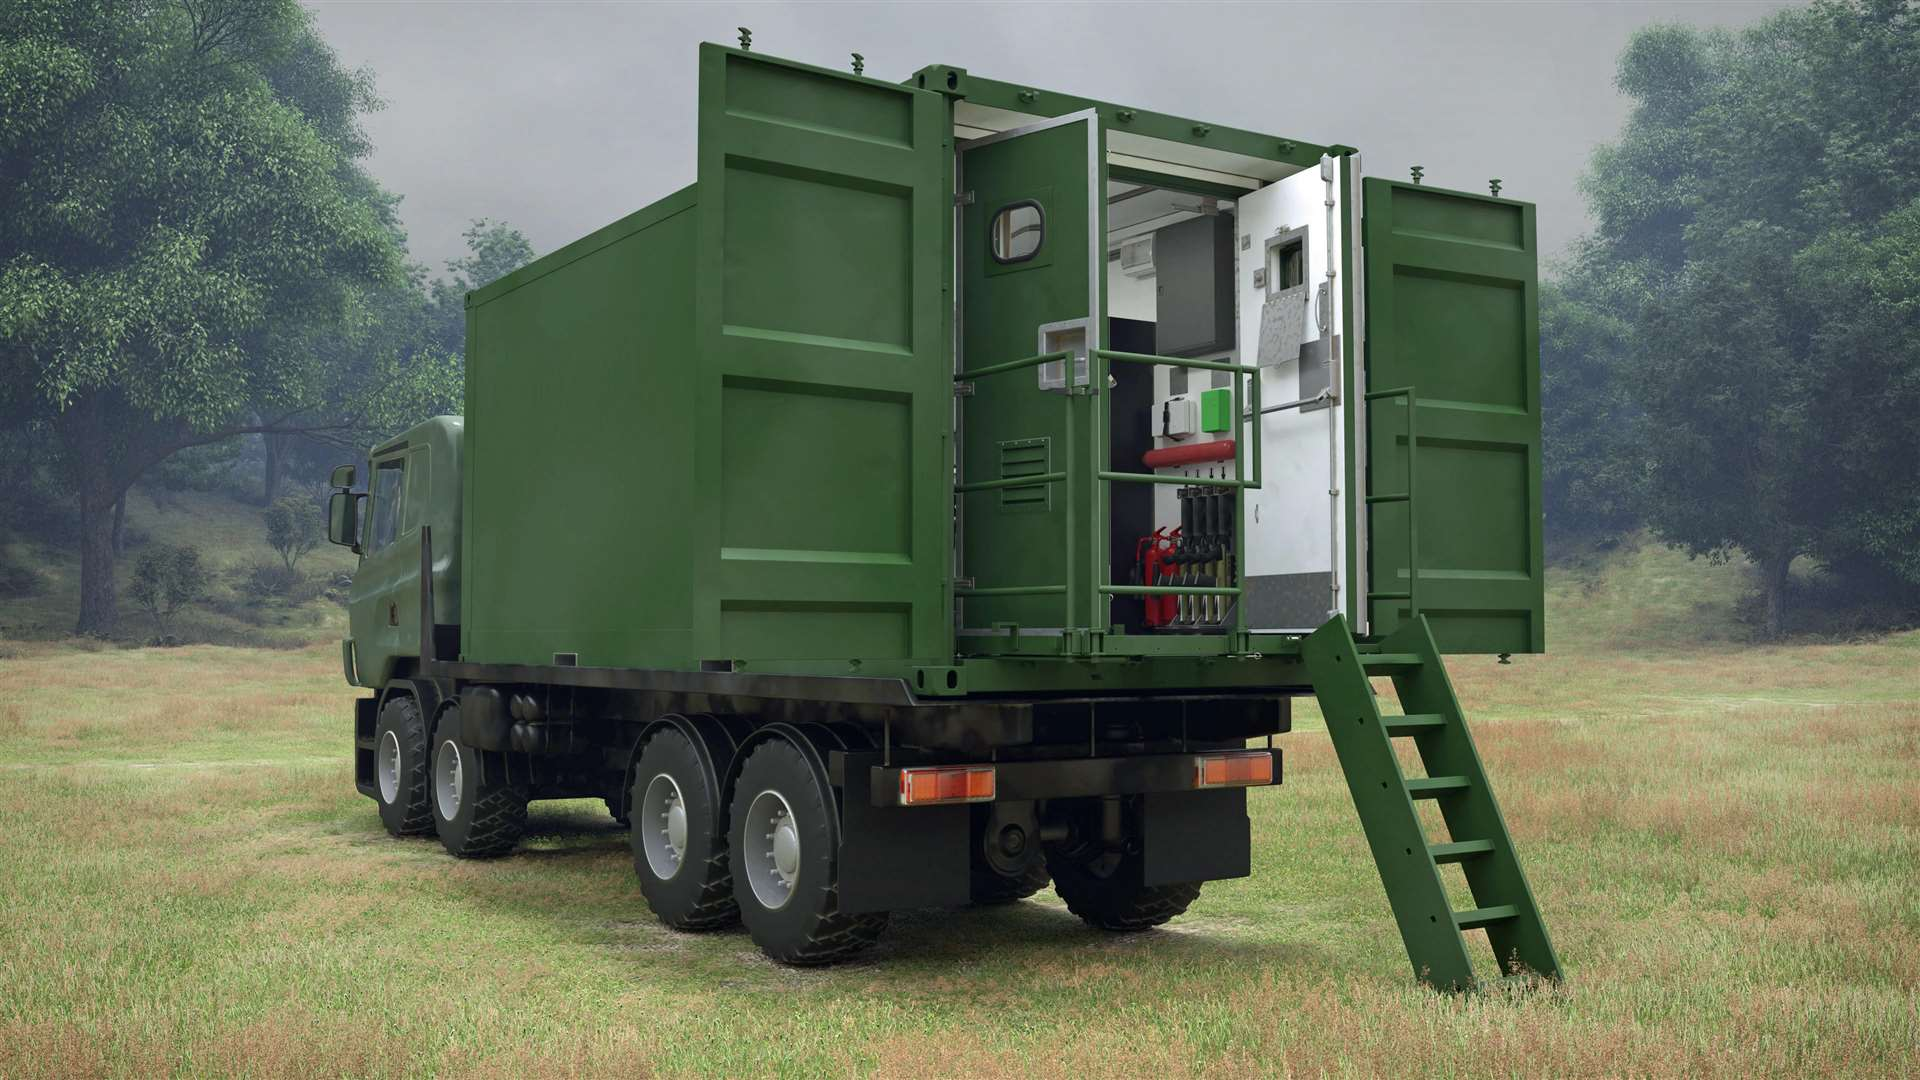 CAD images of the Deployable Office and Stores facilities for the Danish Armed Forces to be provided by Marshall Aerospace and Defence Group (7484353)